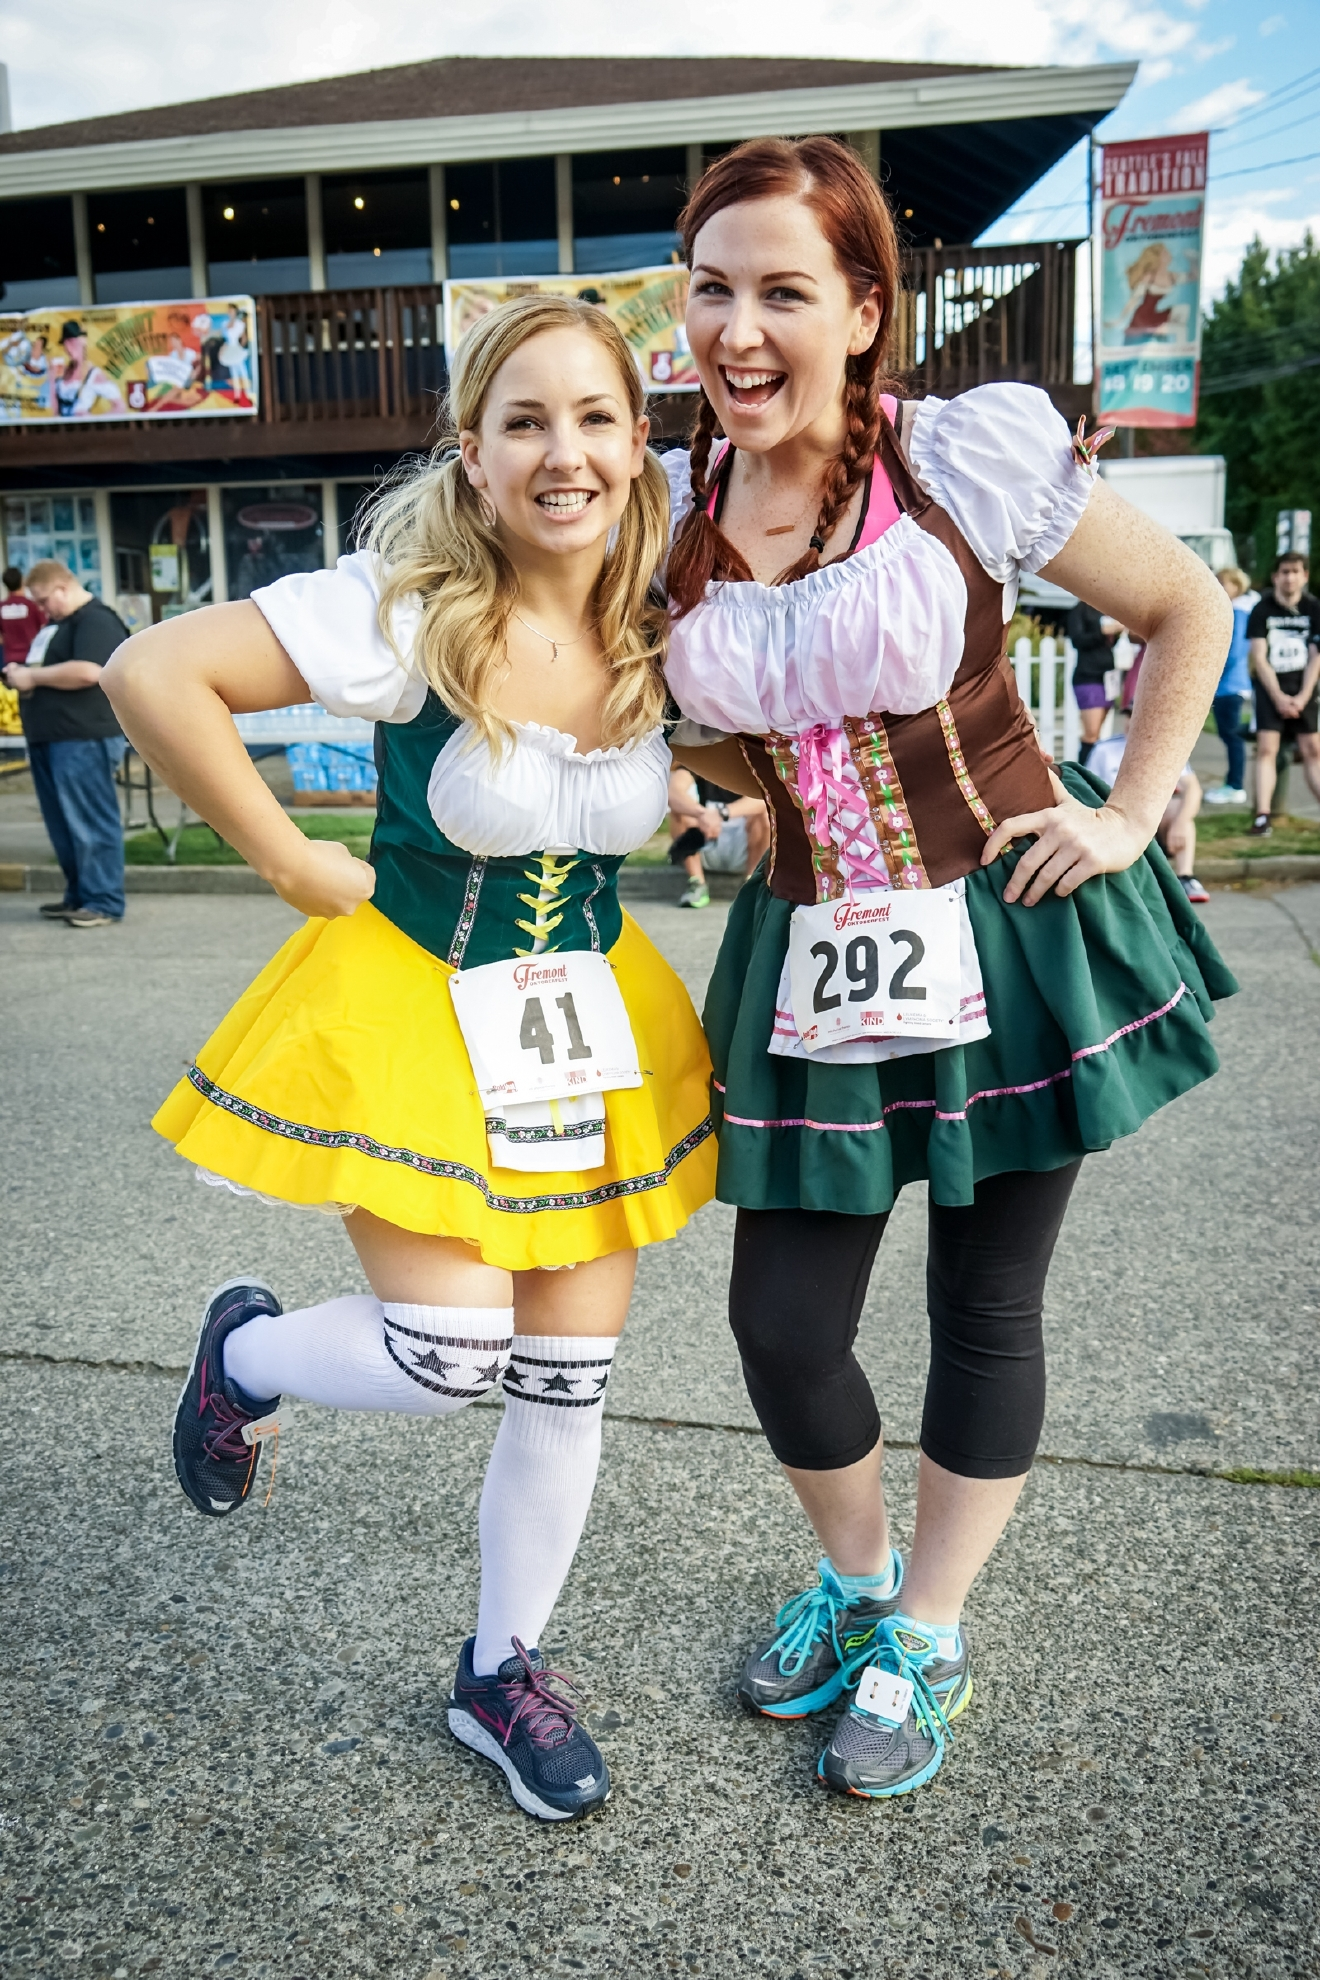 Both Fremont and Kirkland are hosting Oktoberfest this coming weekend - September 22-24. Head out to try some tasty beers and enjoy local music along with other fun activities. (Photo by Alabastro Photography.)